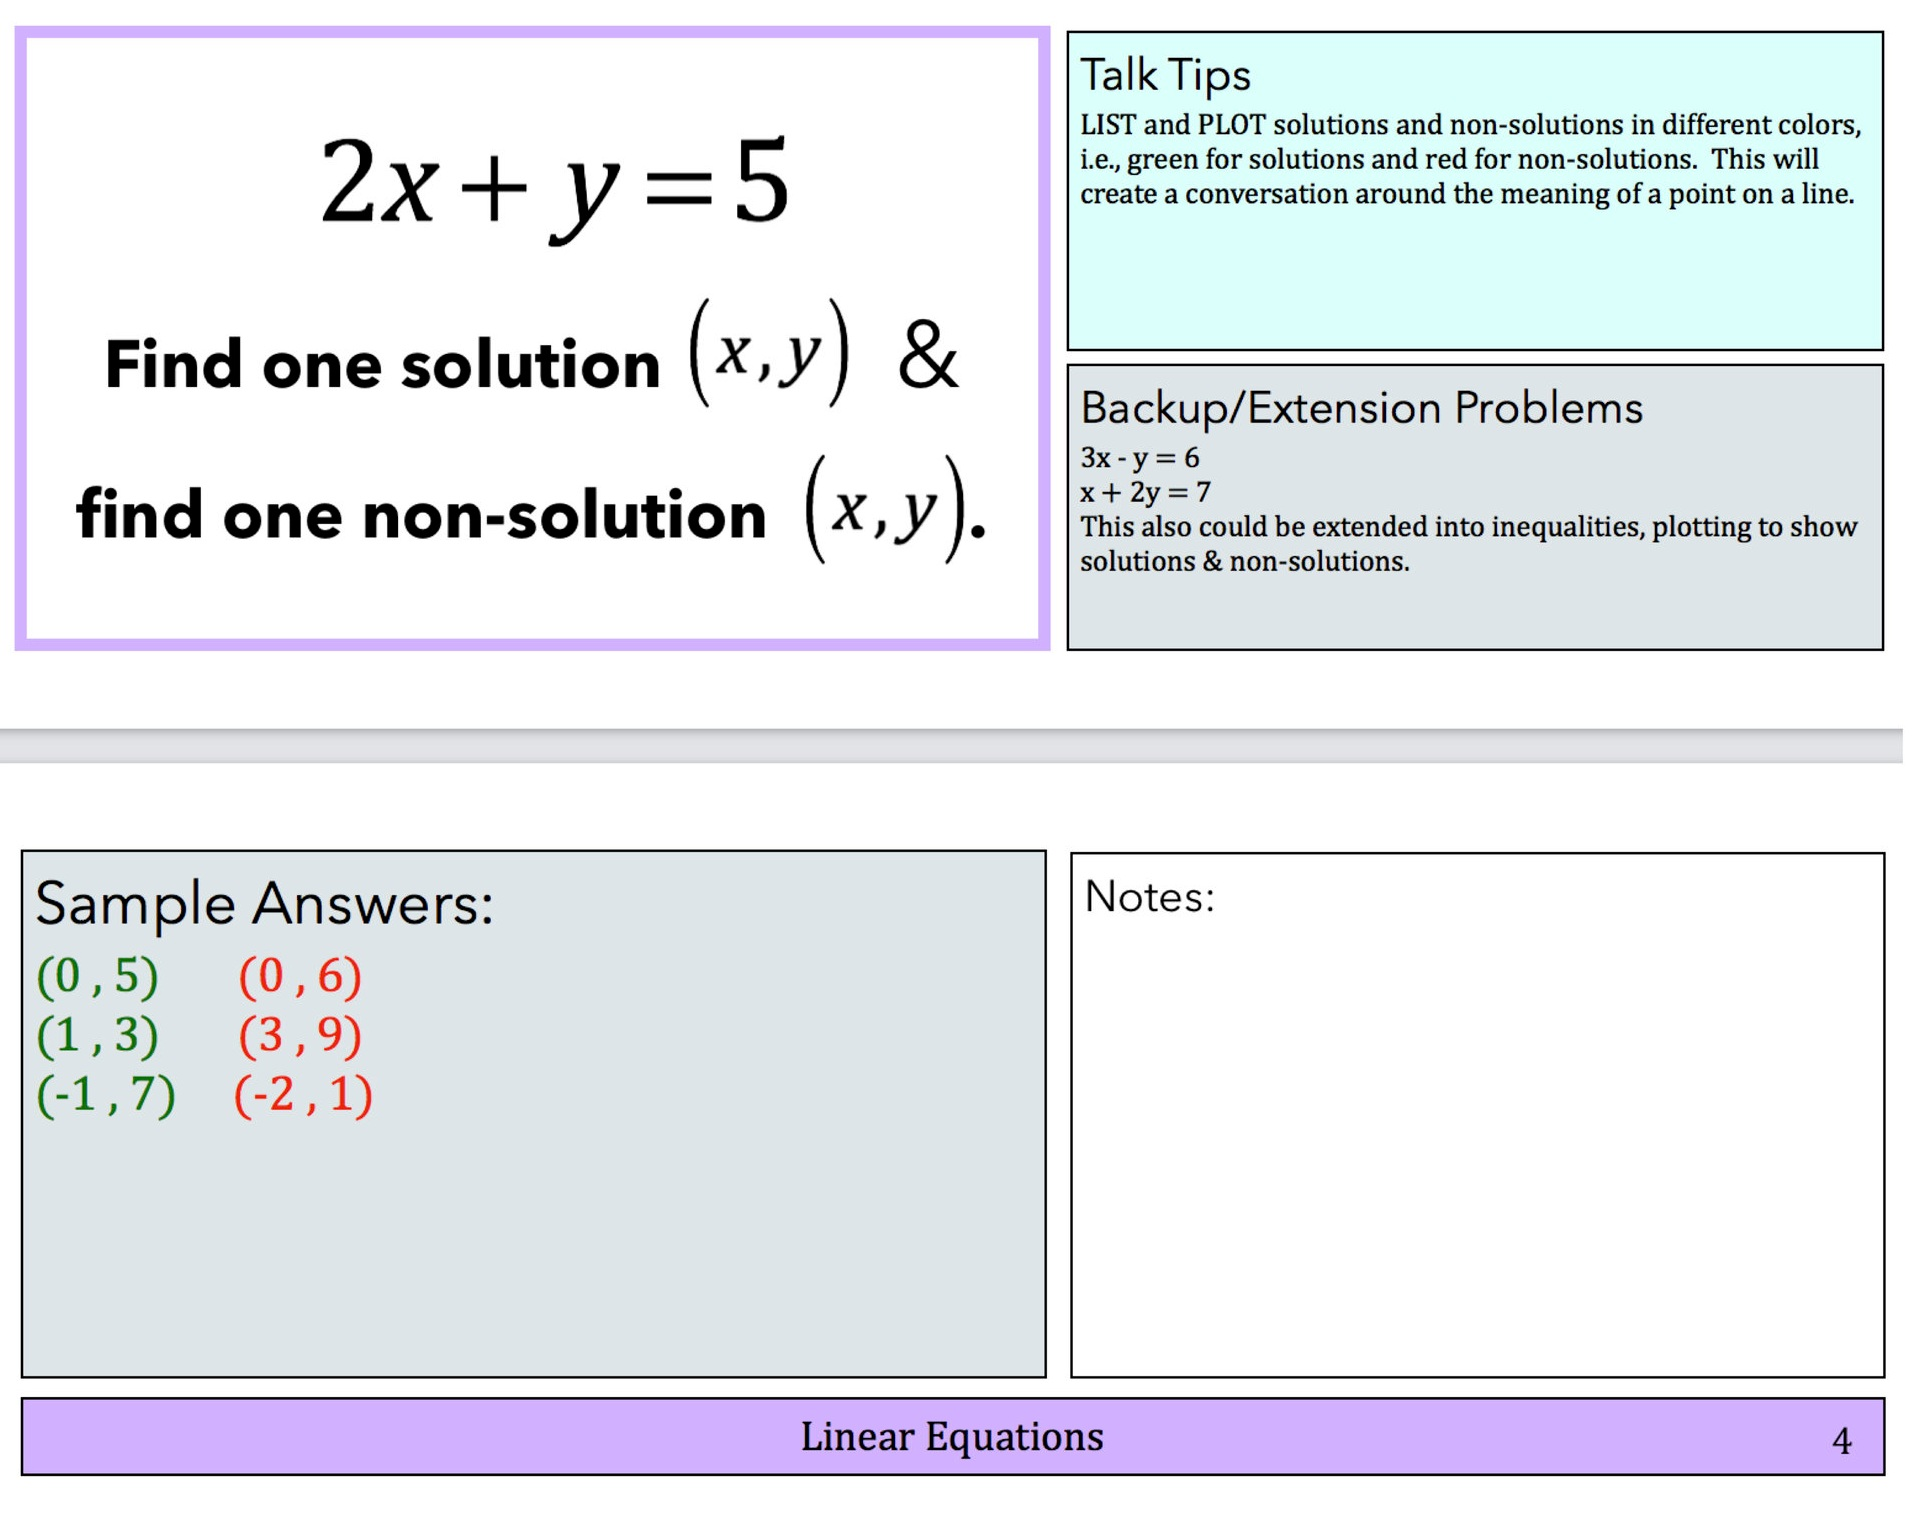 Sample pages from the Alegbra Book. Notice the Talk Tips, Sample Student Responses and even Backup and Extension problems to push the conversation even further.